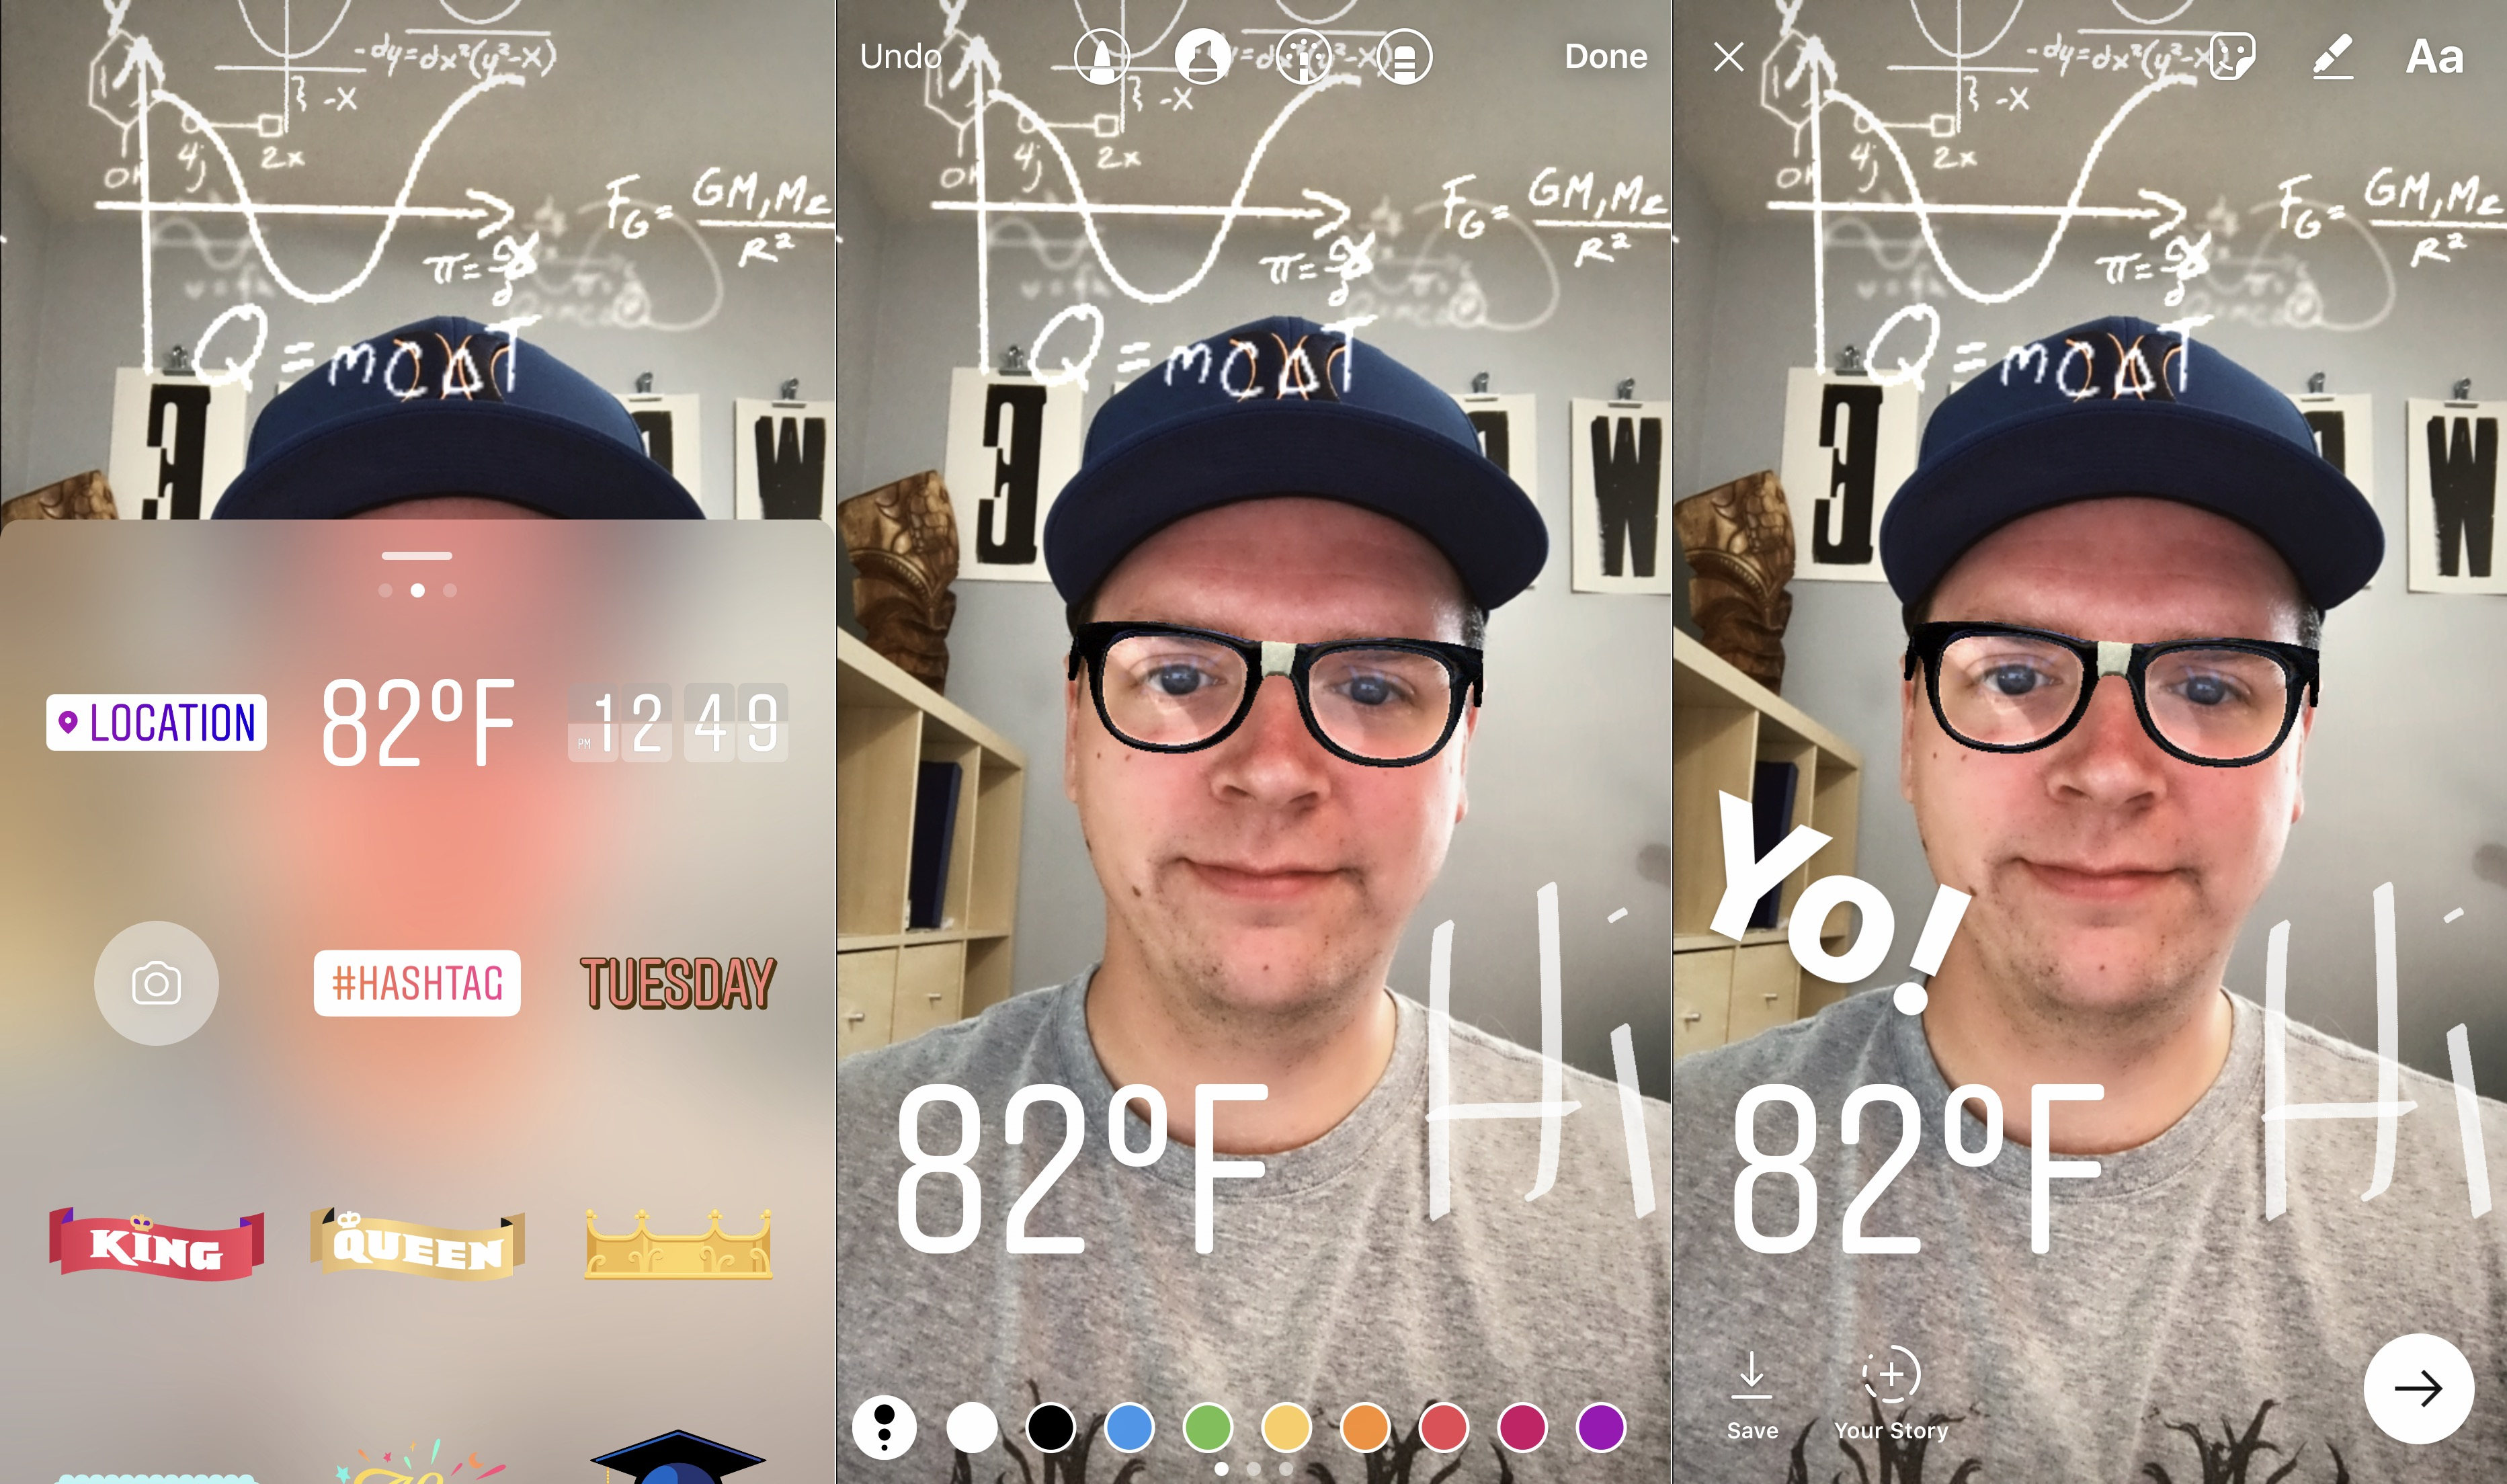 Add stickers, text and effects to your Instagram photos.